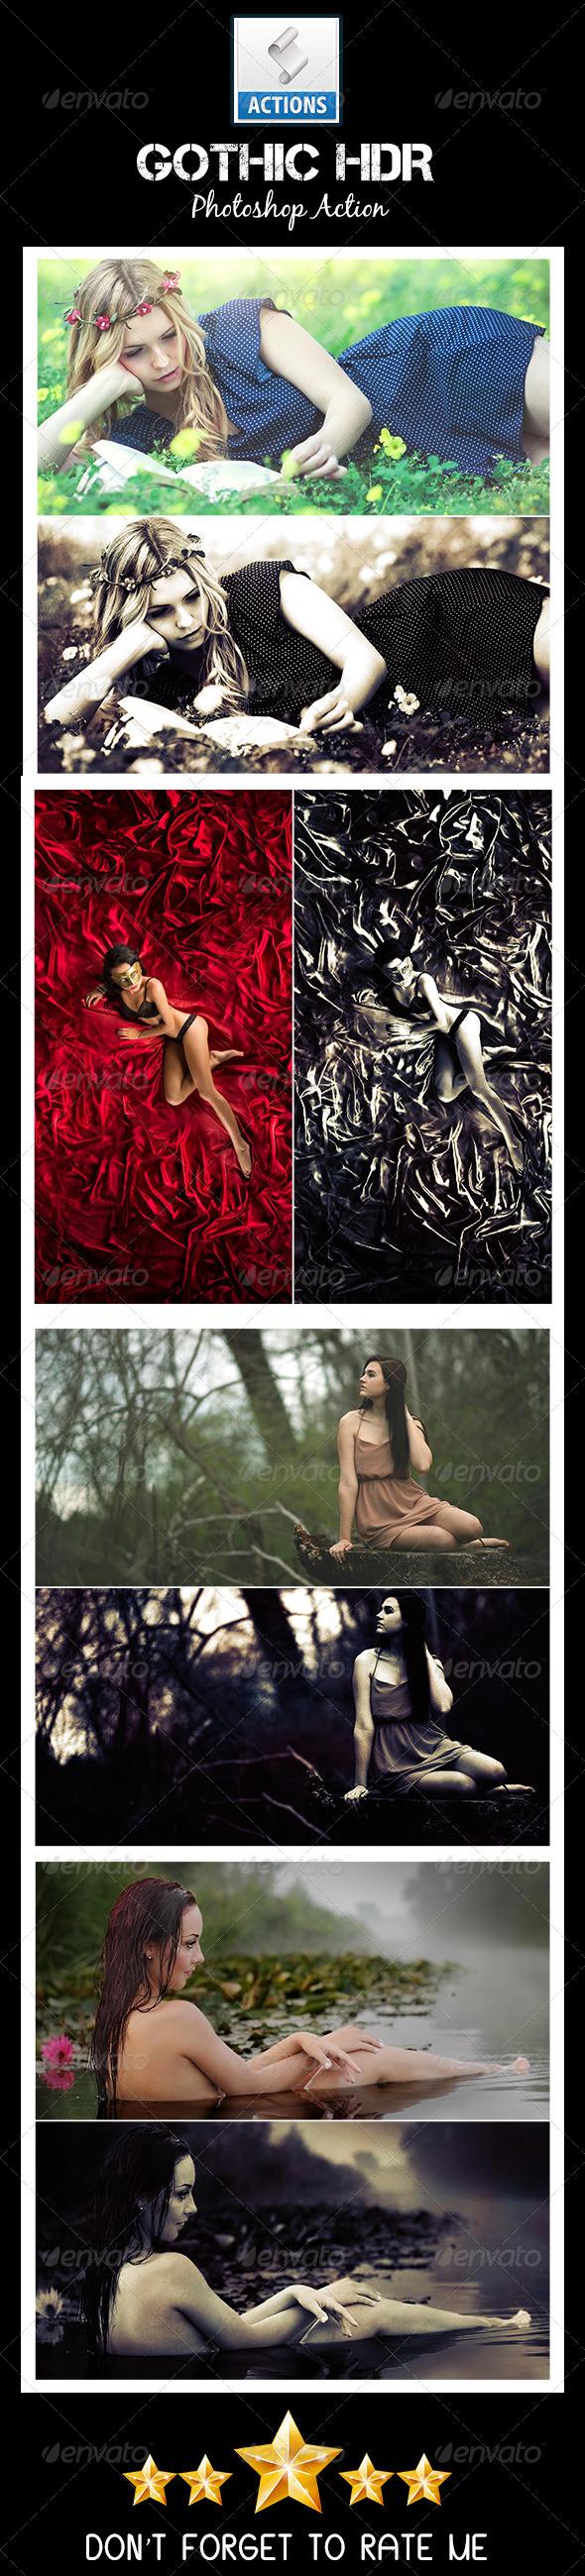 GraphicRiver Gothic HDR 8630838